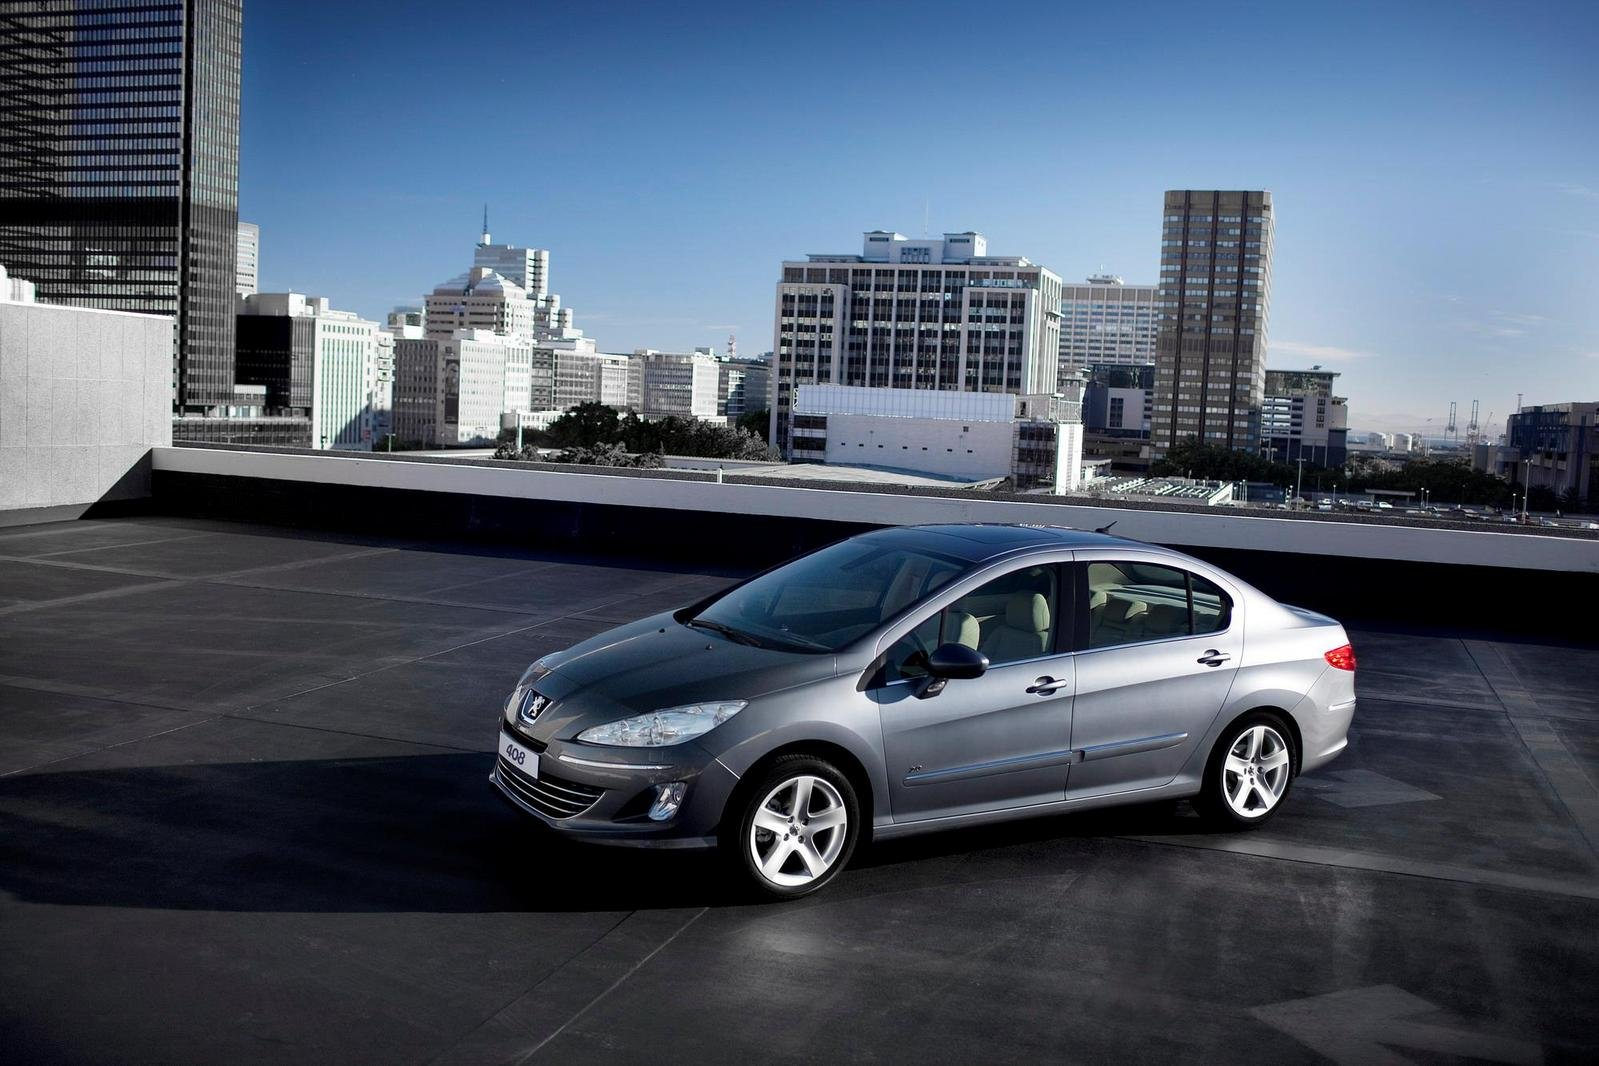 Peugeot 408: Latest News, Reviews, Specifications, Prices